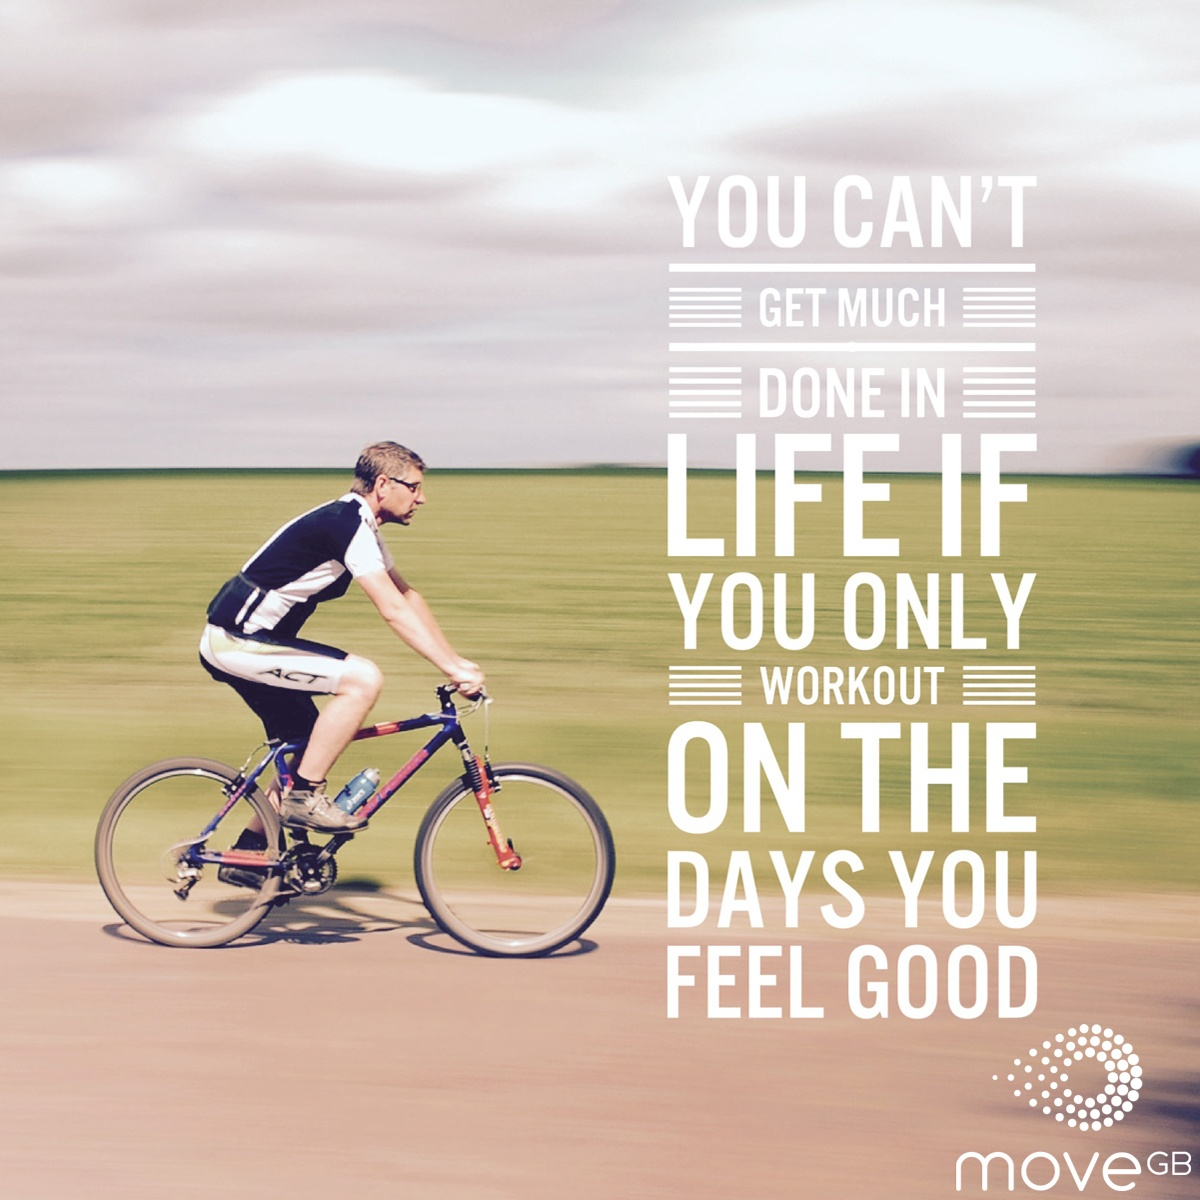 You-cant-get-much-done-in-life-if-you-only-workout-on-the-days-you-feel-good